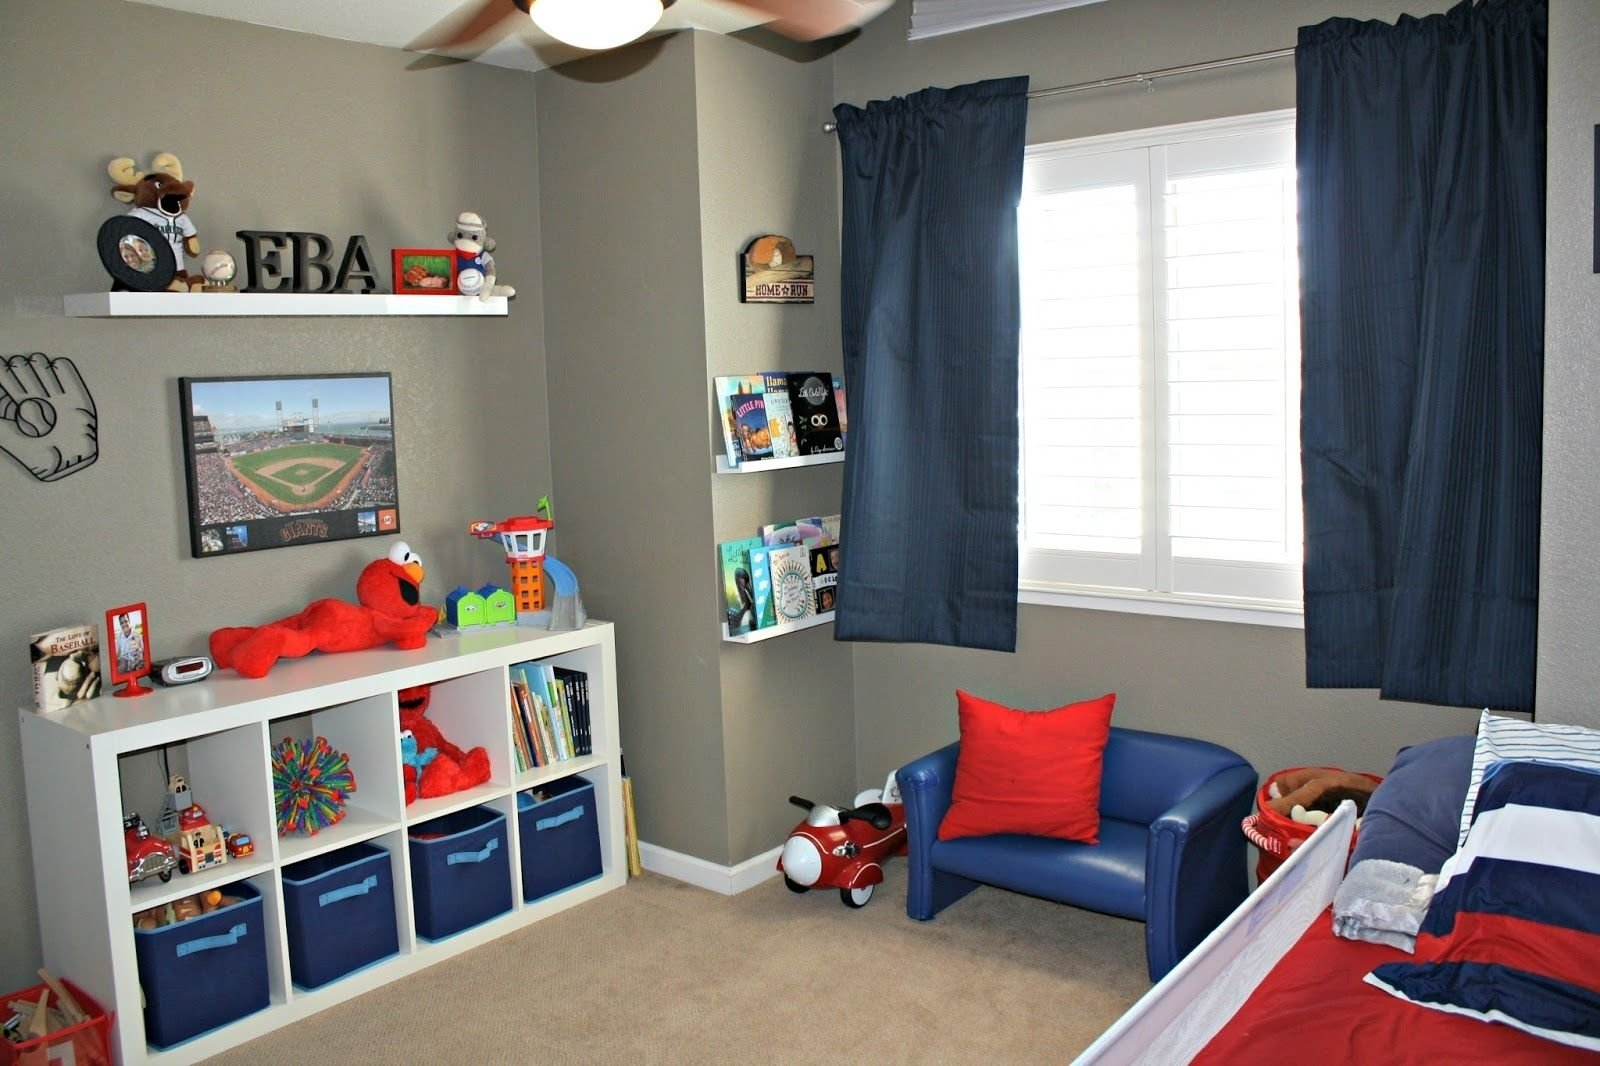 10 Nice Toddler Boy Room Decorating Ideas this doesnt even begin to scrape the surface of how awesome ljs 2020